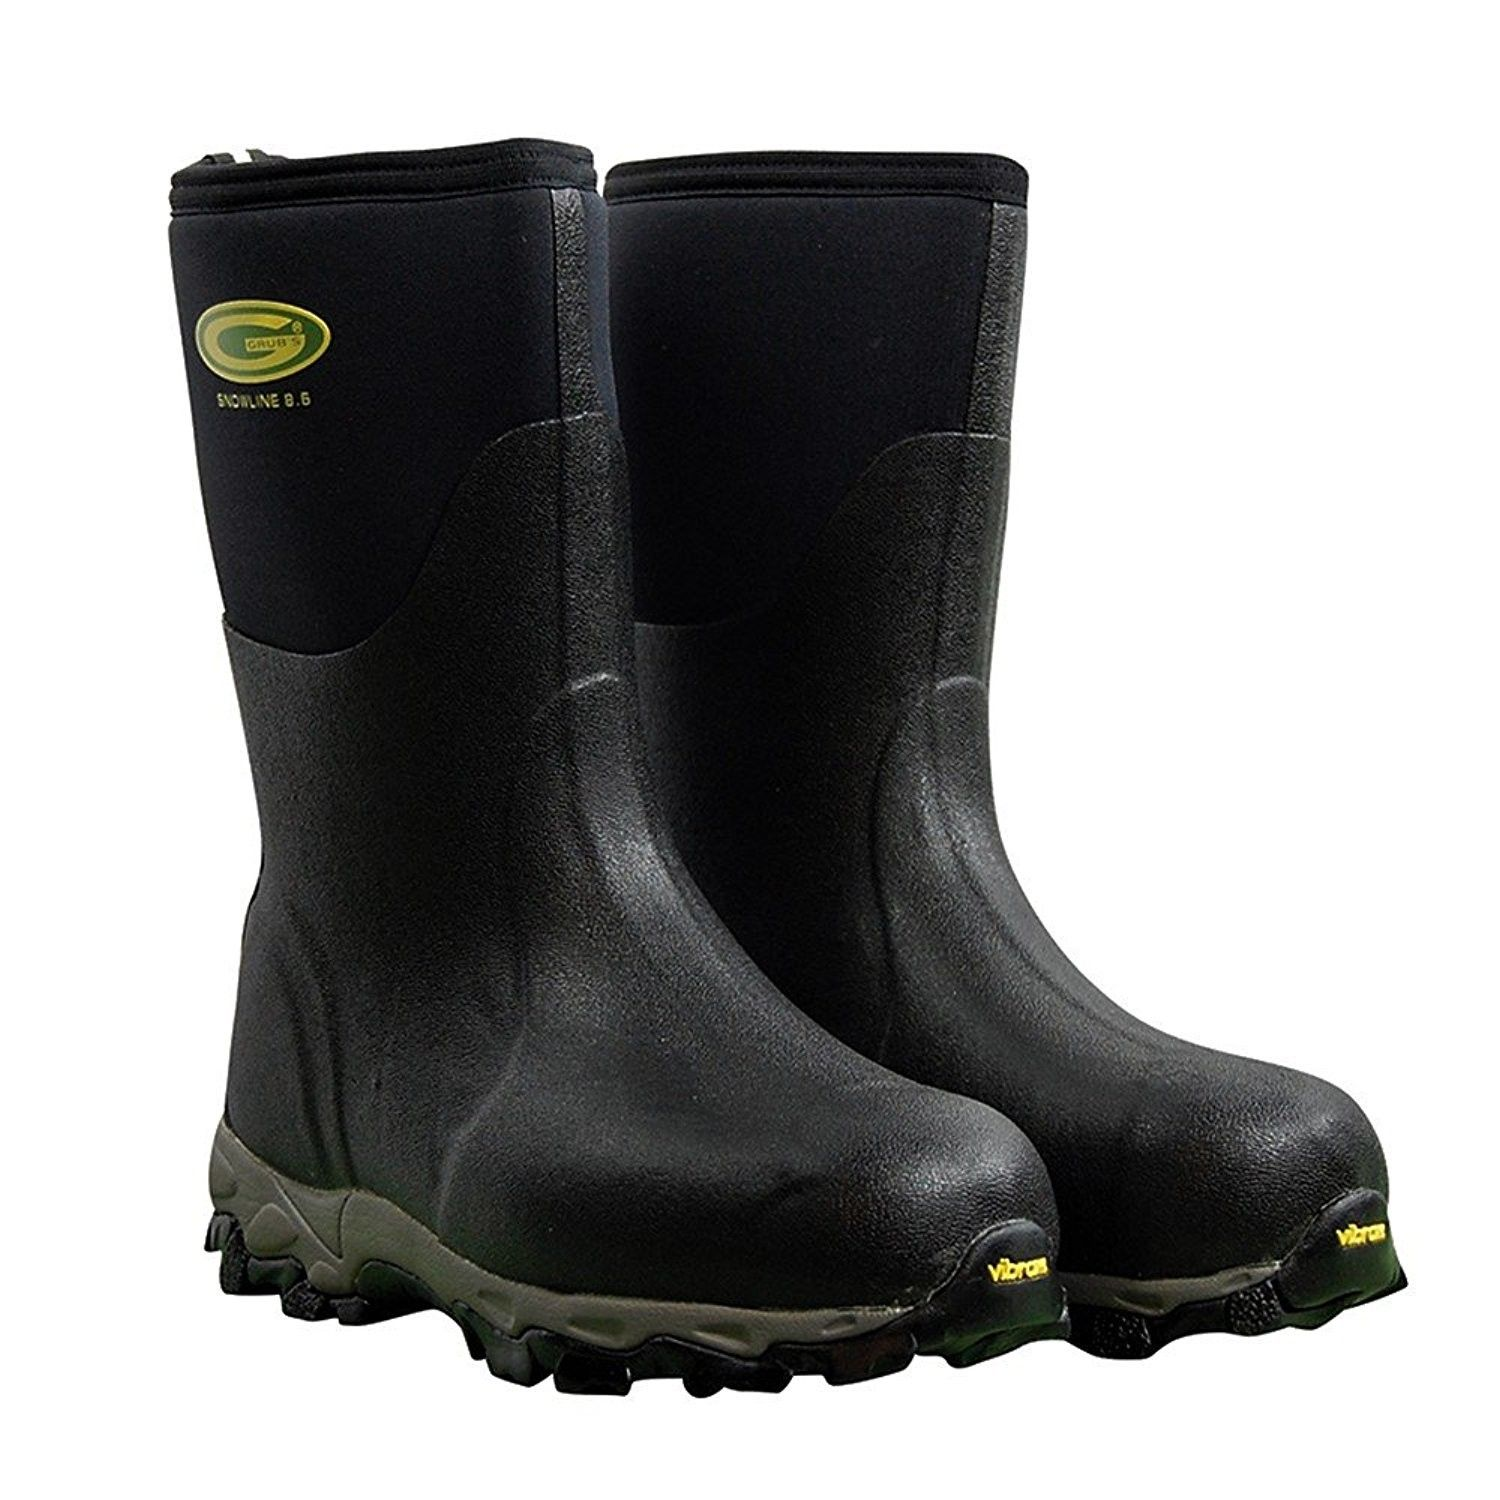 Waterproof Boots For Men And Women Perfect For Muck Mud Rain